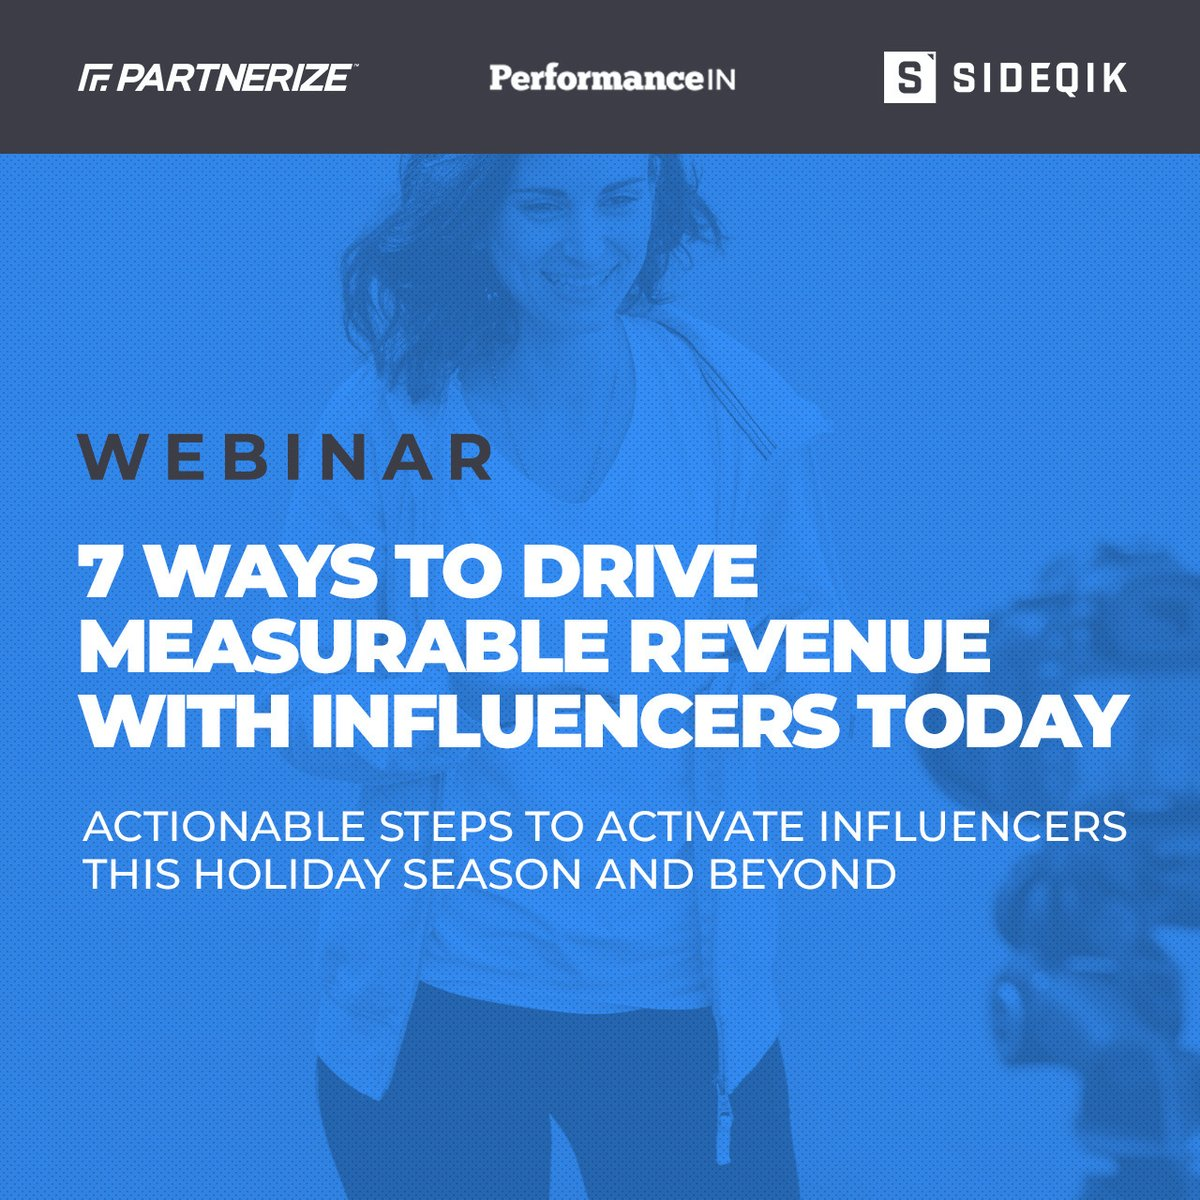 Thank you to everyone for tuning into this week's webinar with @partnerize and @TeamSideqik on 7 Ways to Drive Measurable Revenue with Influencers Today. Rewatch the session now: https://t.co/xN211plTfn https://t.co/KudJFXc60J